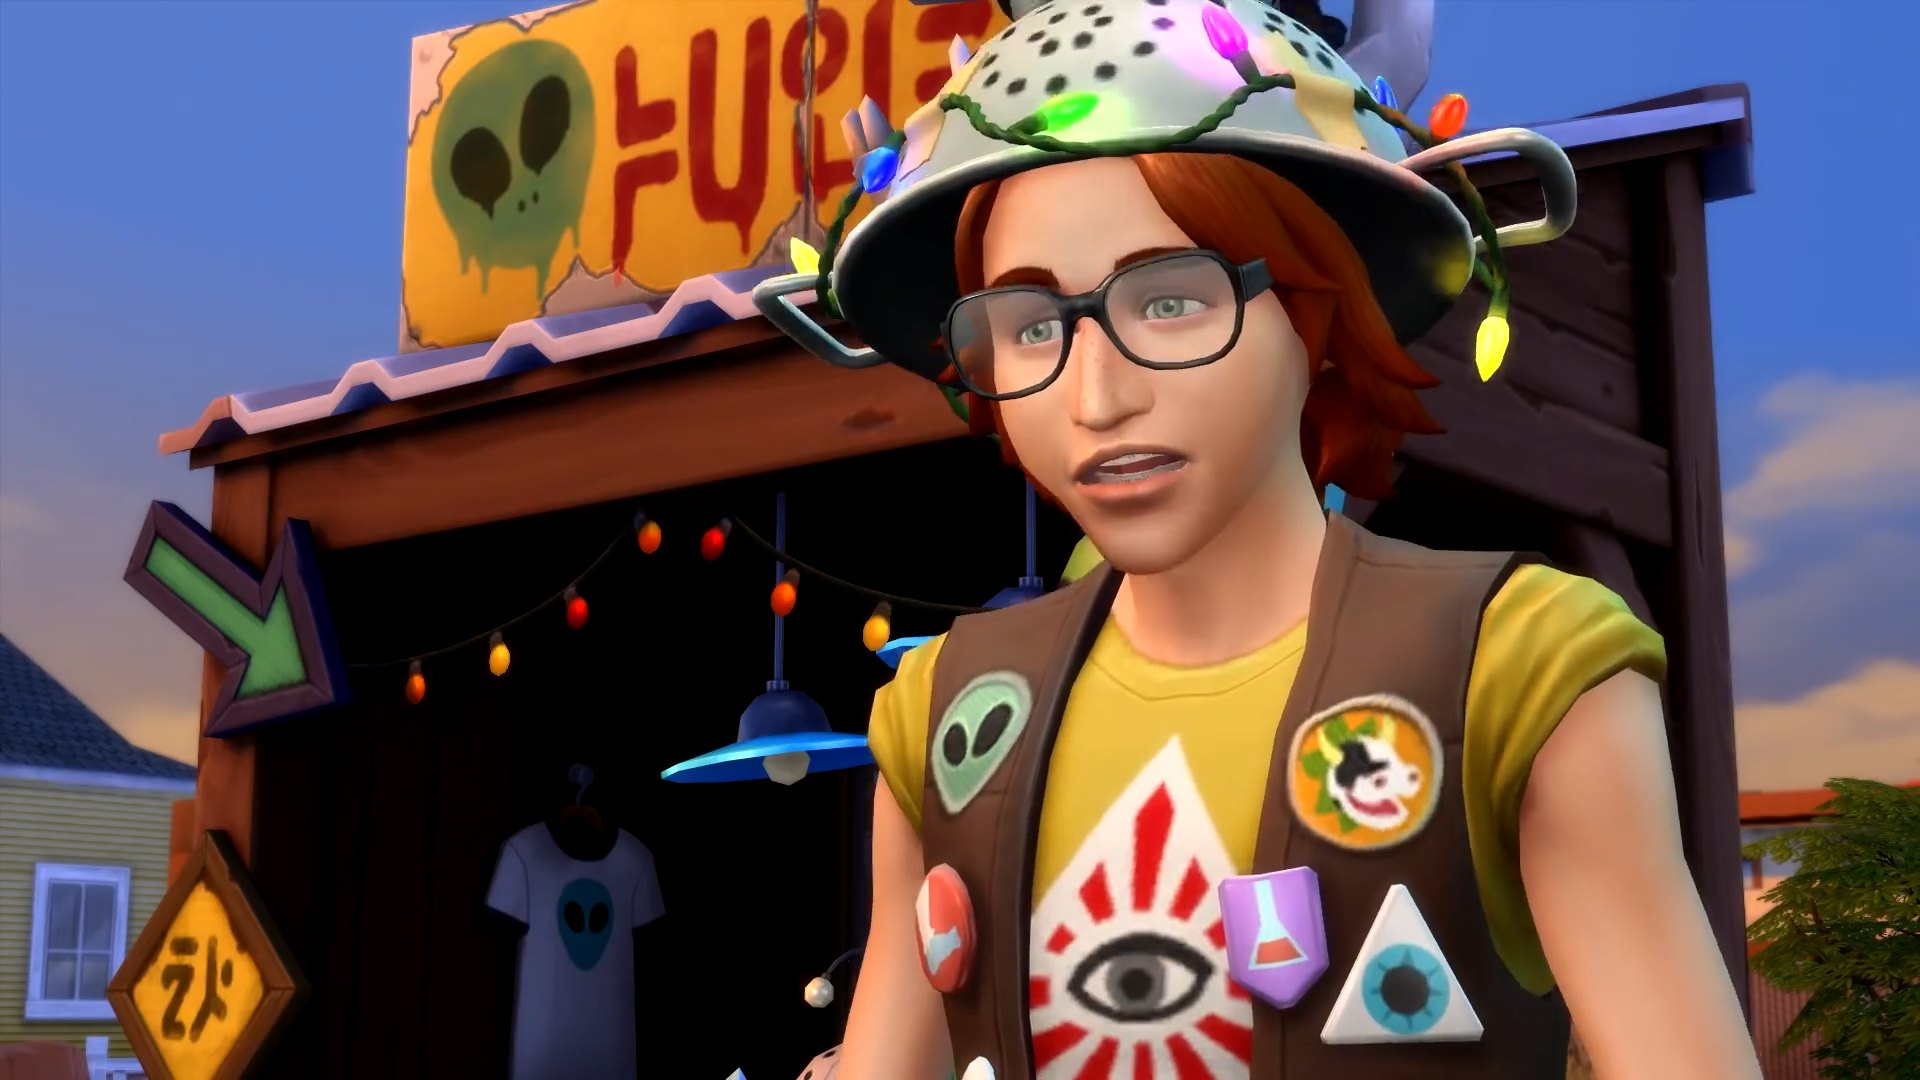 The Sims 4 Strangerville - Don your tinfoil hat to protect against mind control